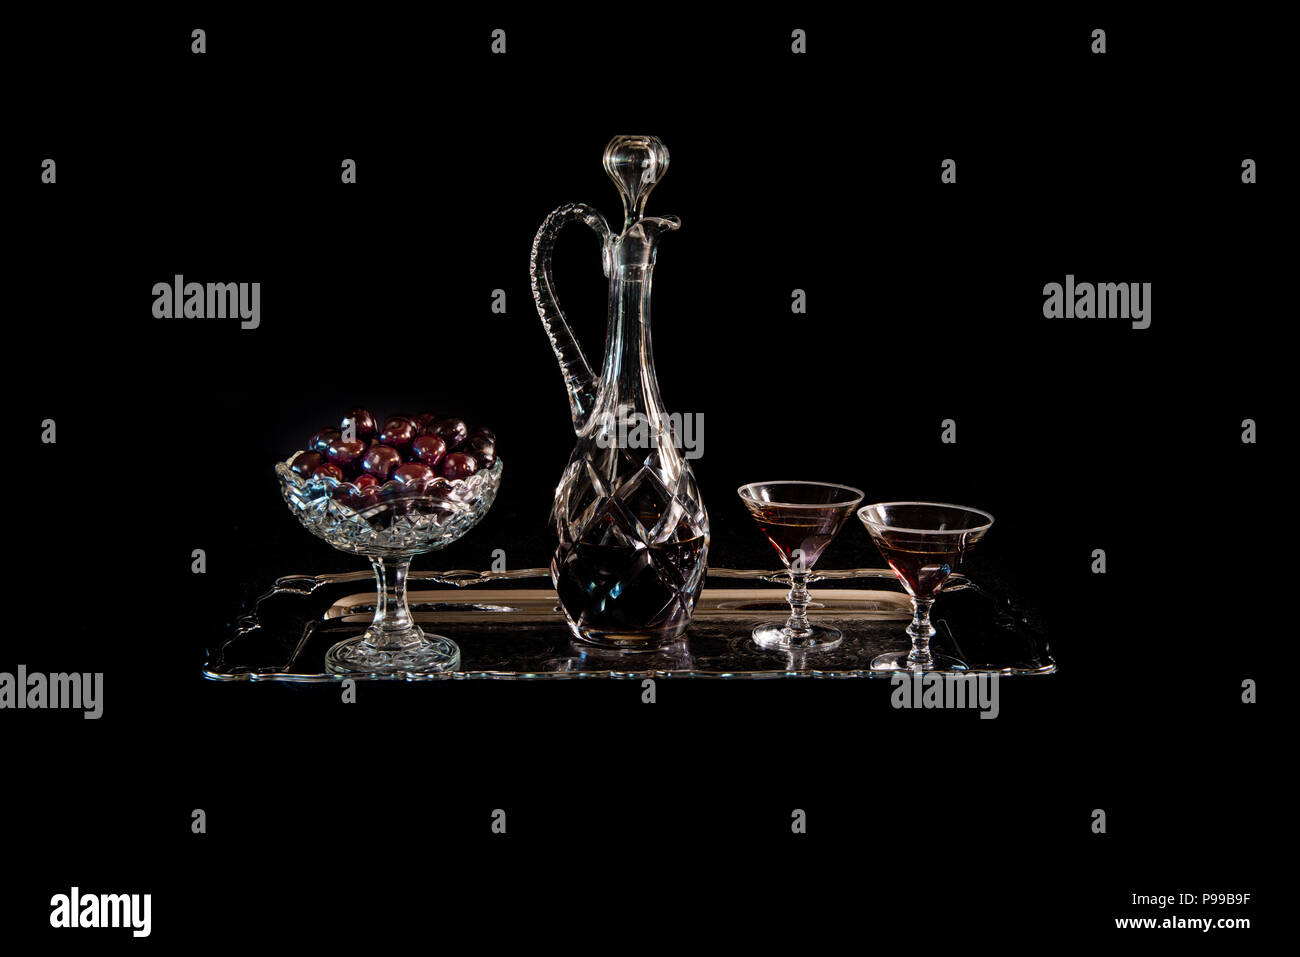 Cherries on an old crystal bowl and a crystal carafe and glasses with cherry brandy on a silver dish with a black background, a still life. - Stock Image